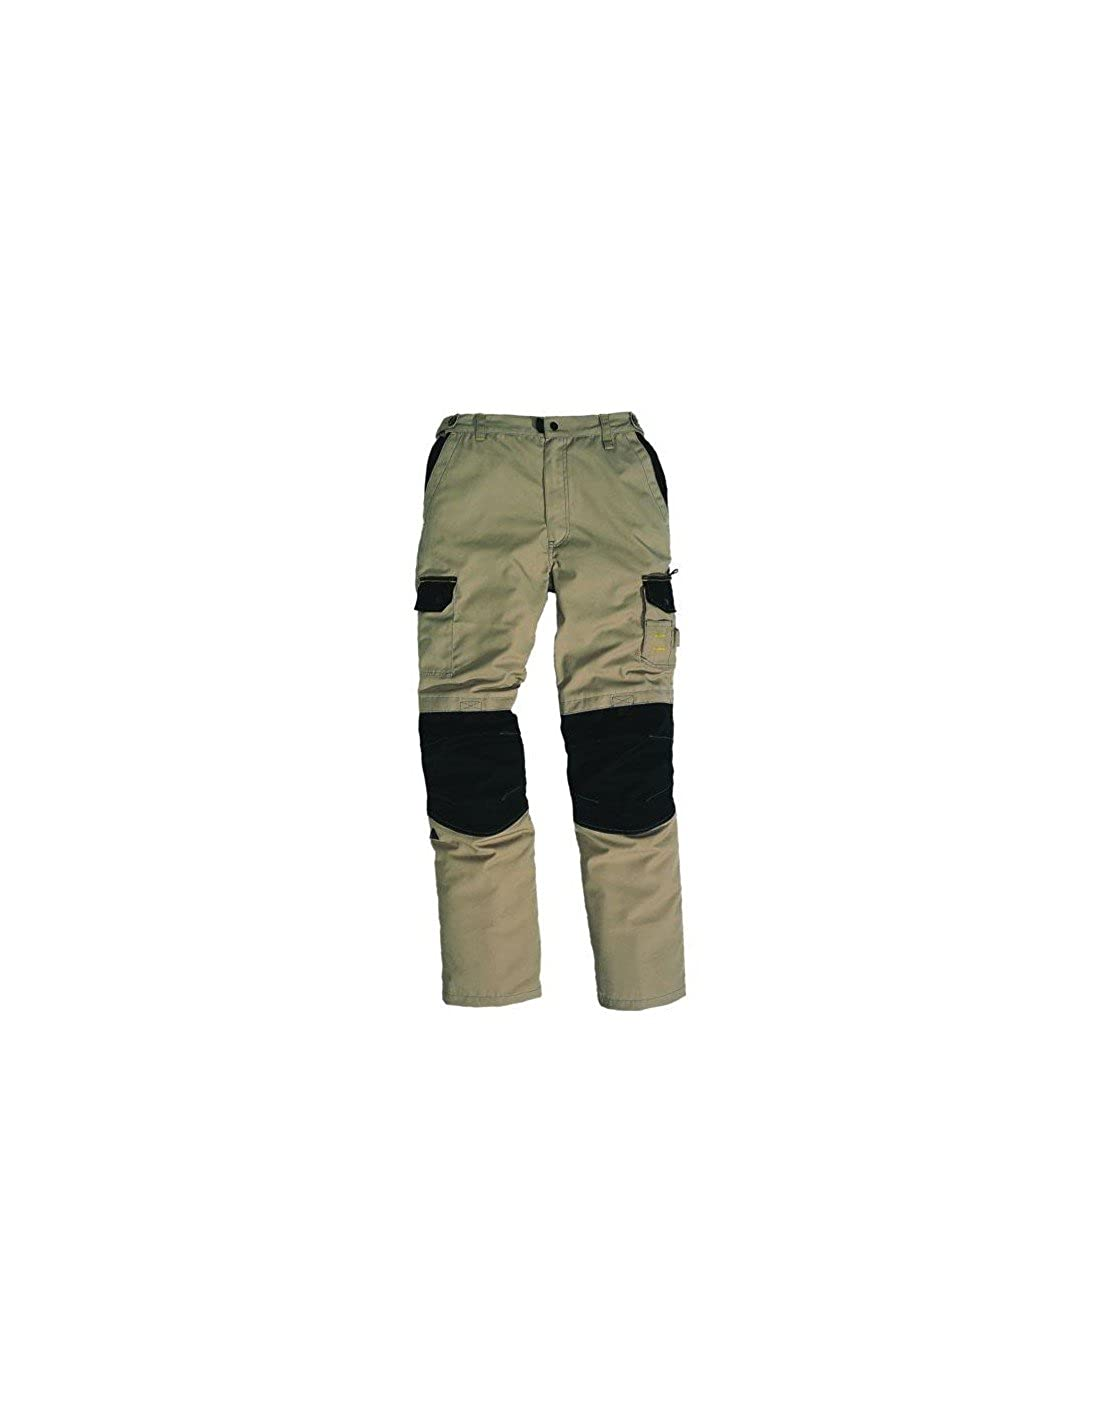 Delta Plus Panoply M5PA2 Mens Cordura Work Trousers Pants Cargo Knee Pad Pockets